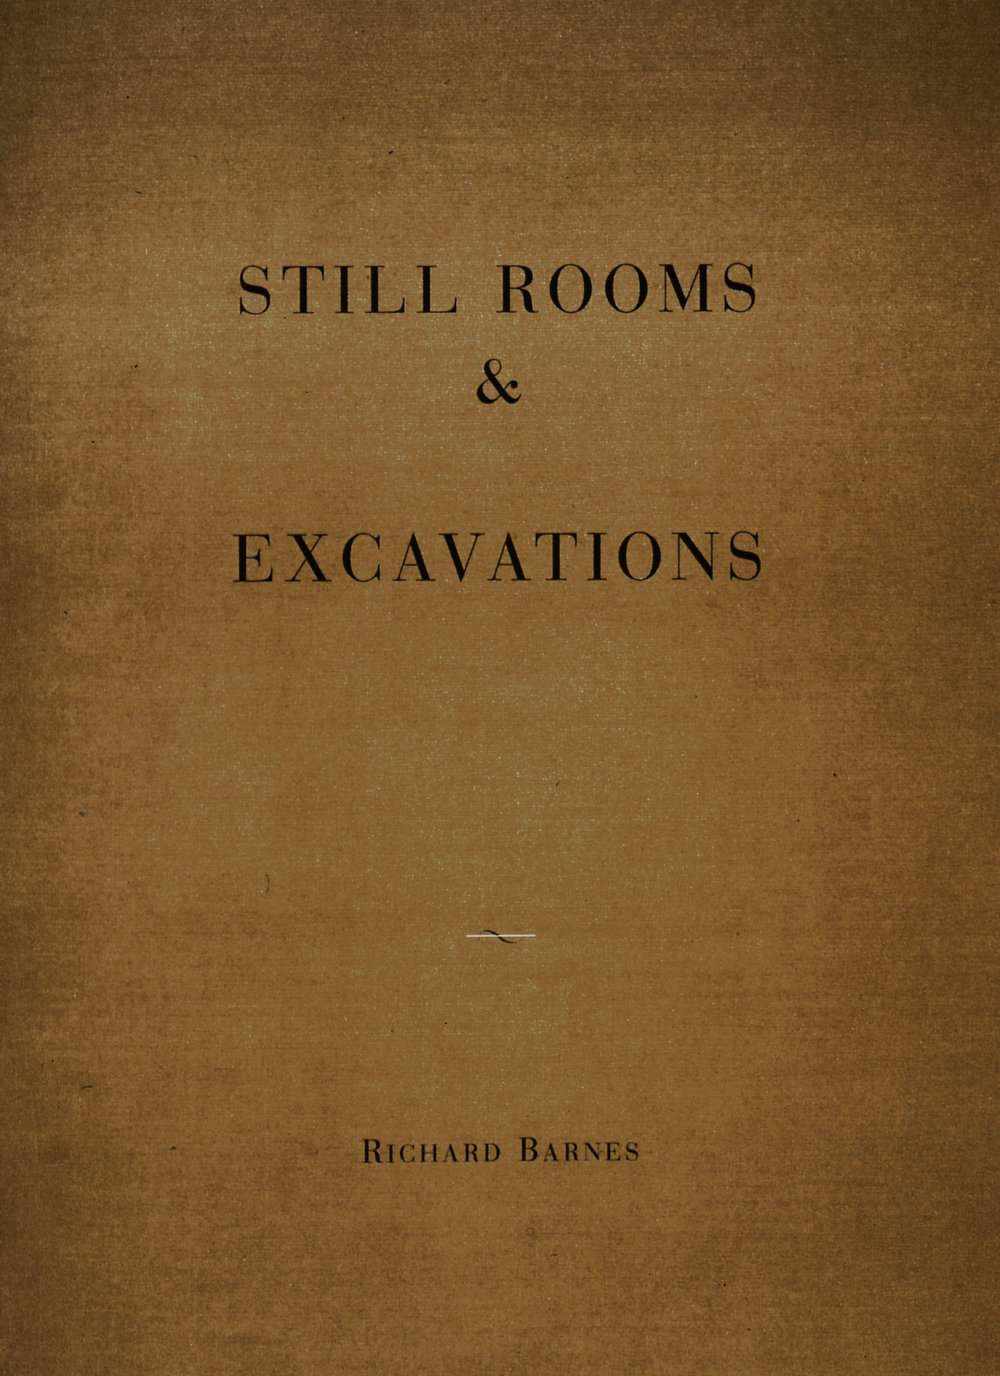 Still Rooms & Excavations, Catalogue with Essays by Richard Barnes and Douglas Nickel, 1997